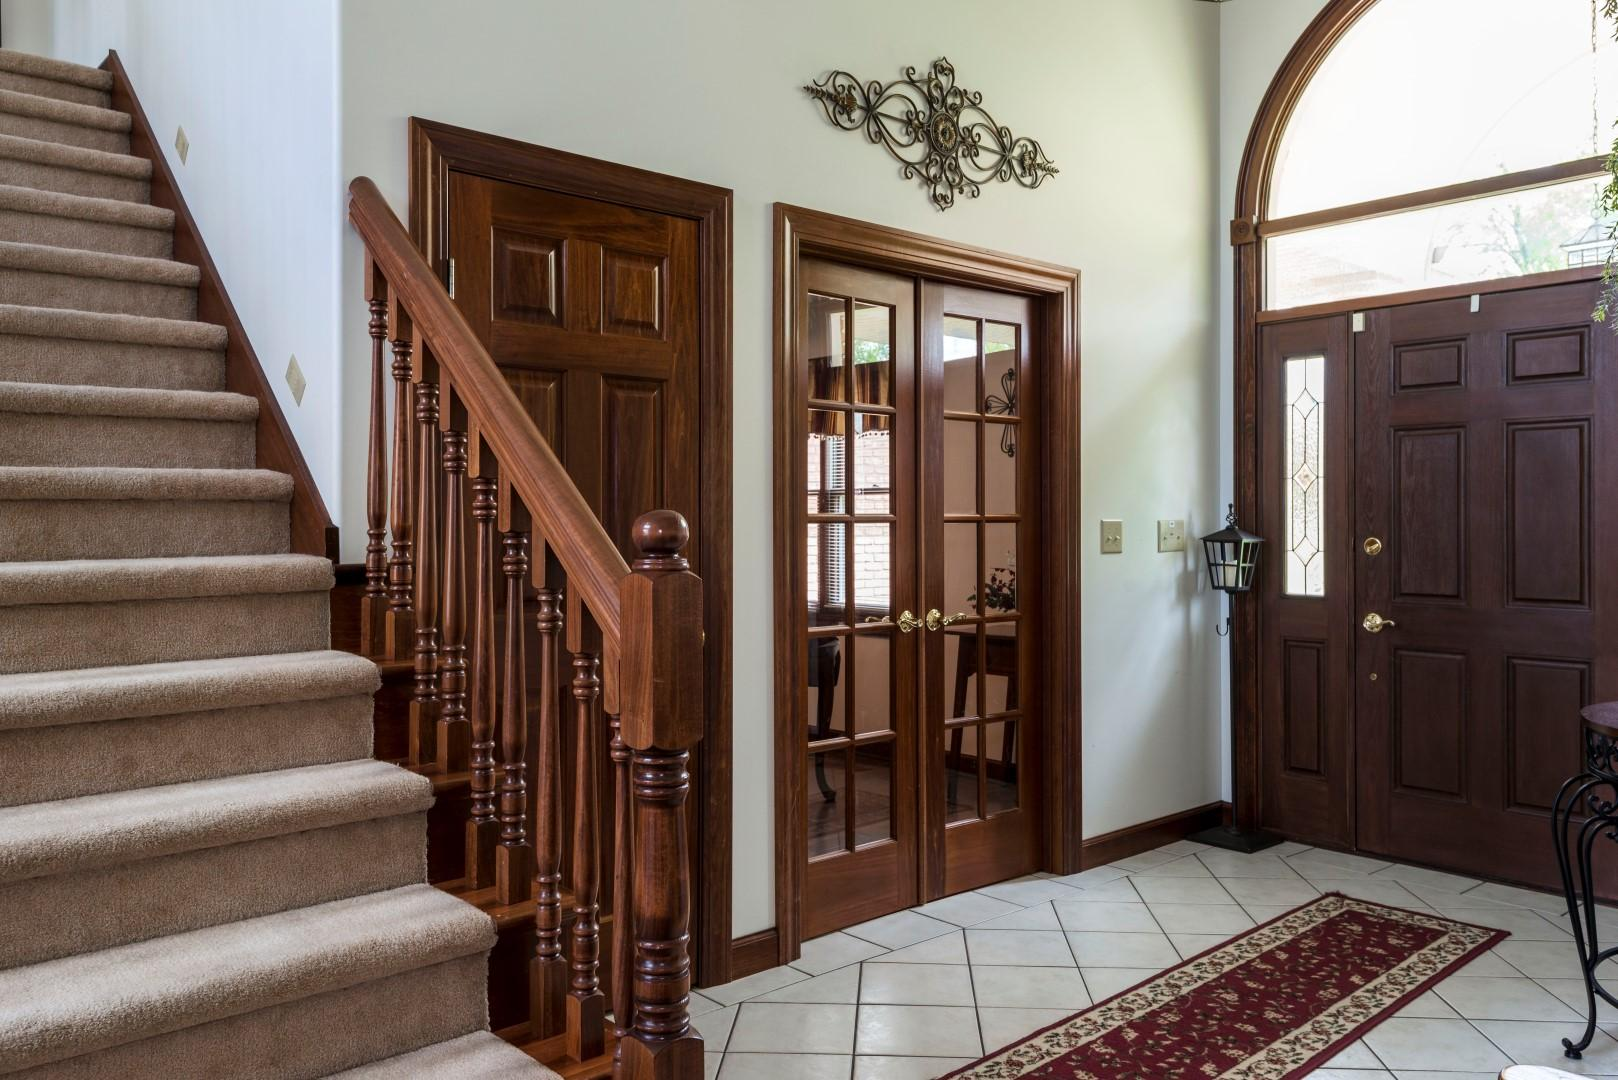 Photo 2 for 9544 Country Club Rd Piqua, OH 45356